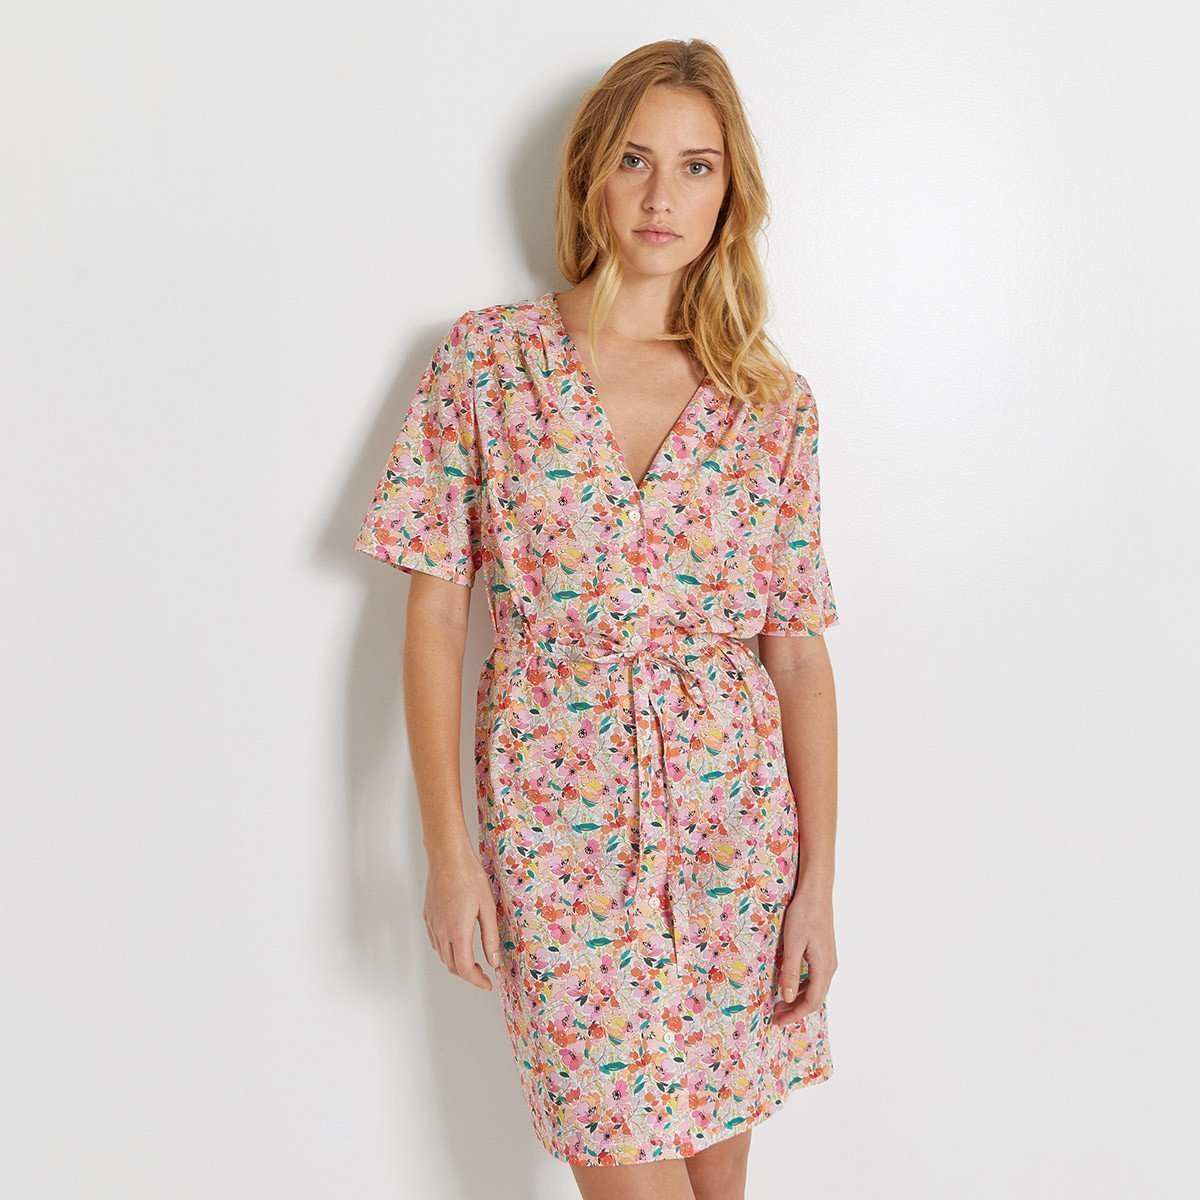 LT-Nghtdress-JARDIN